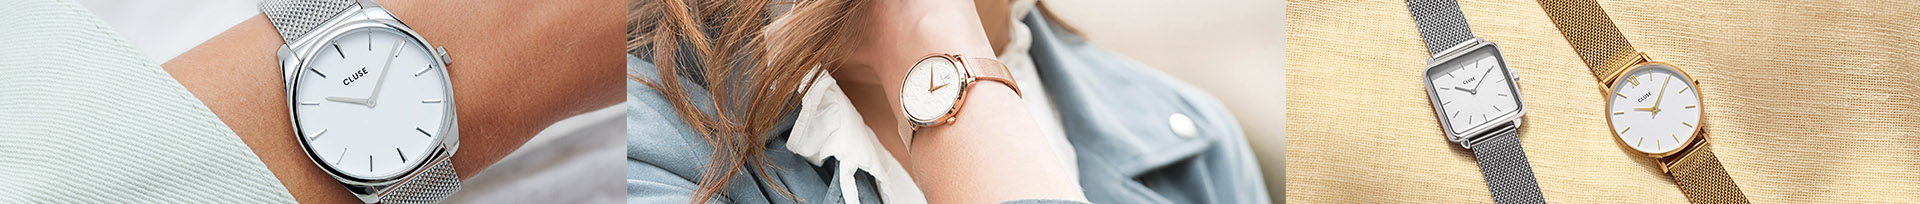 womens-watches-category-banner1.jpg